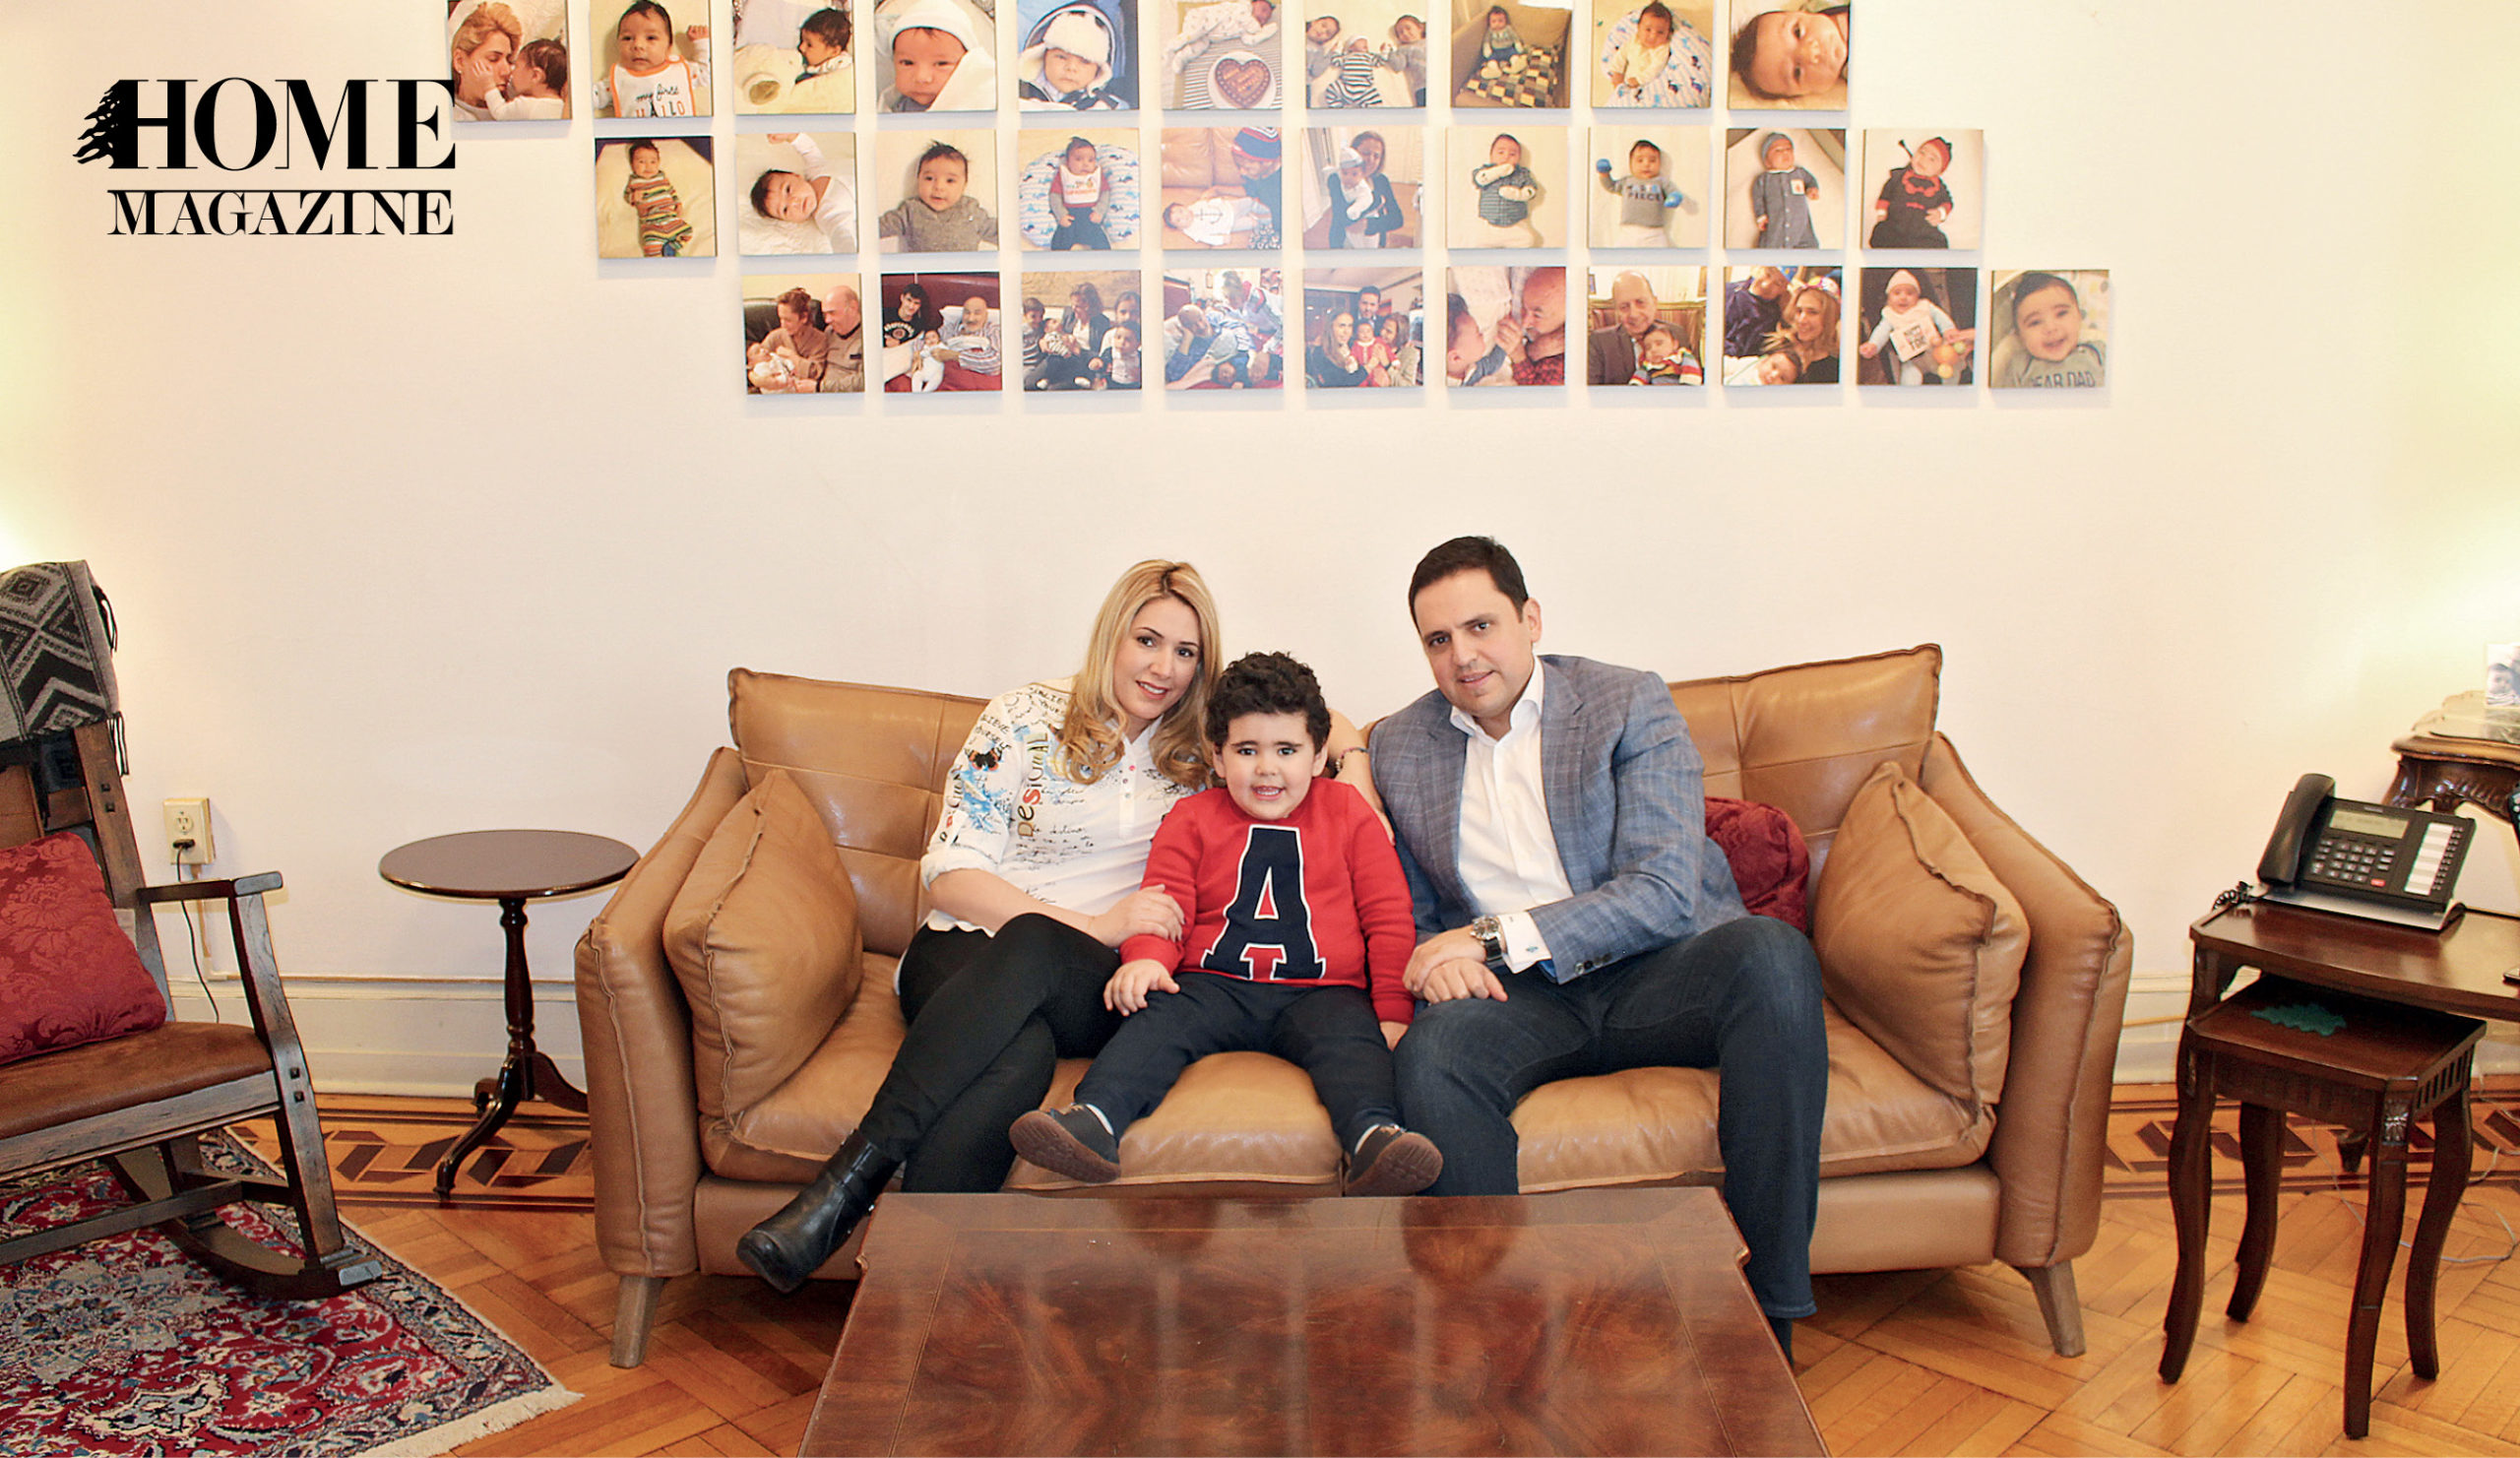 A man, a woman and a child on a couch